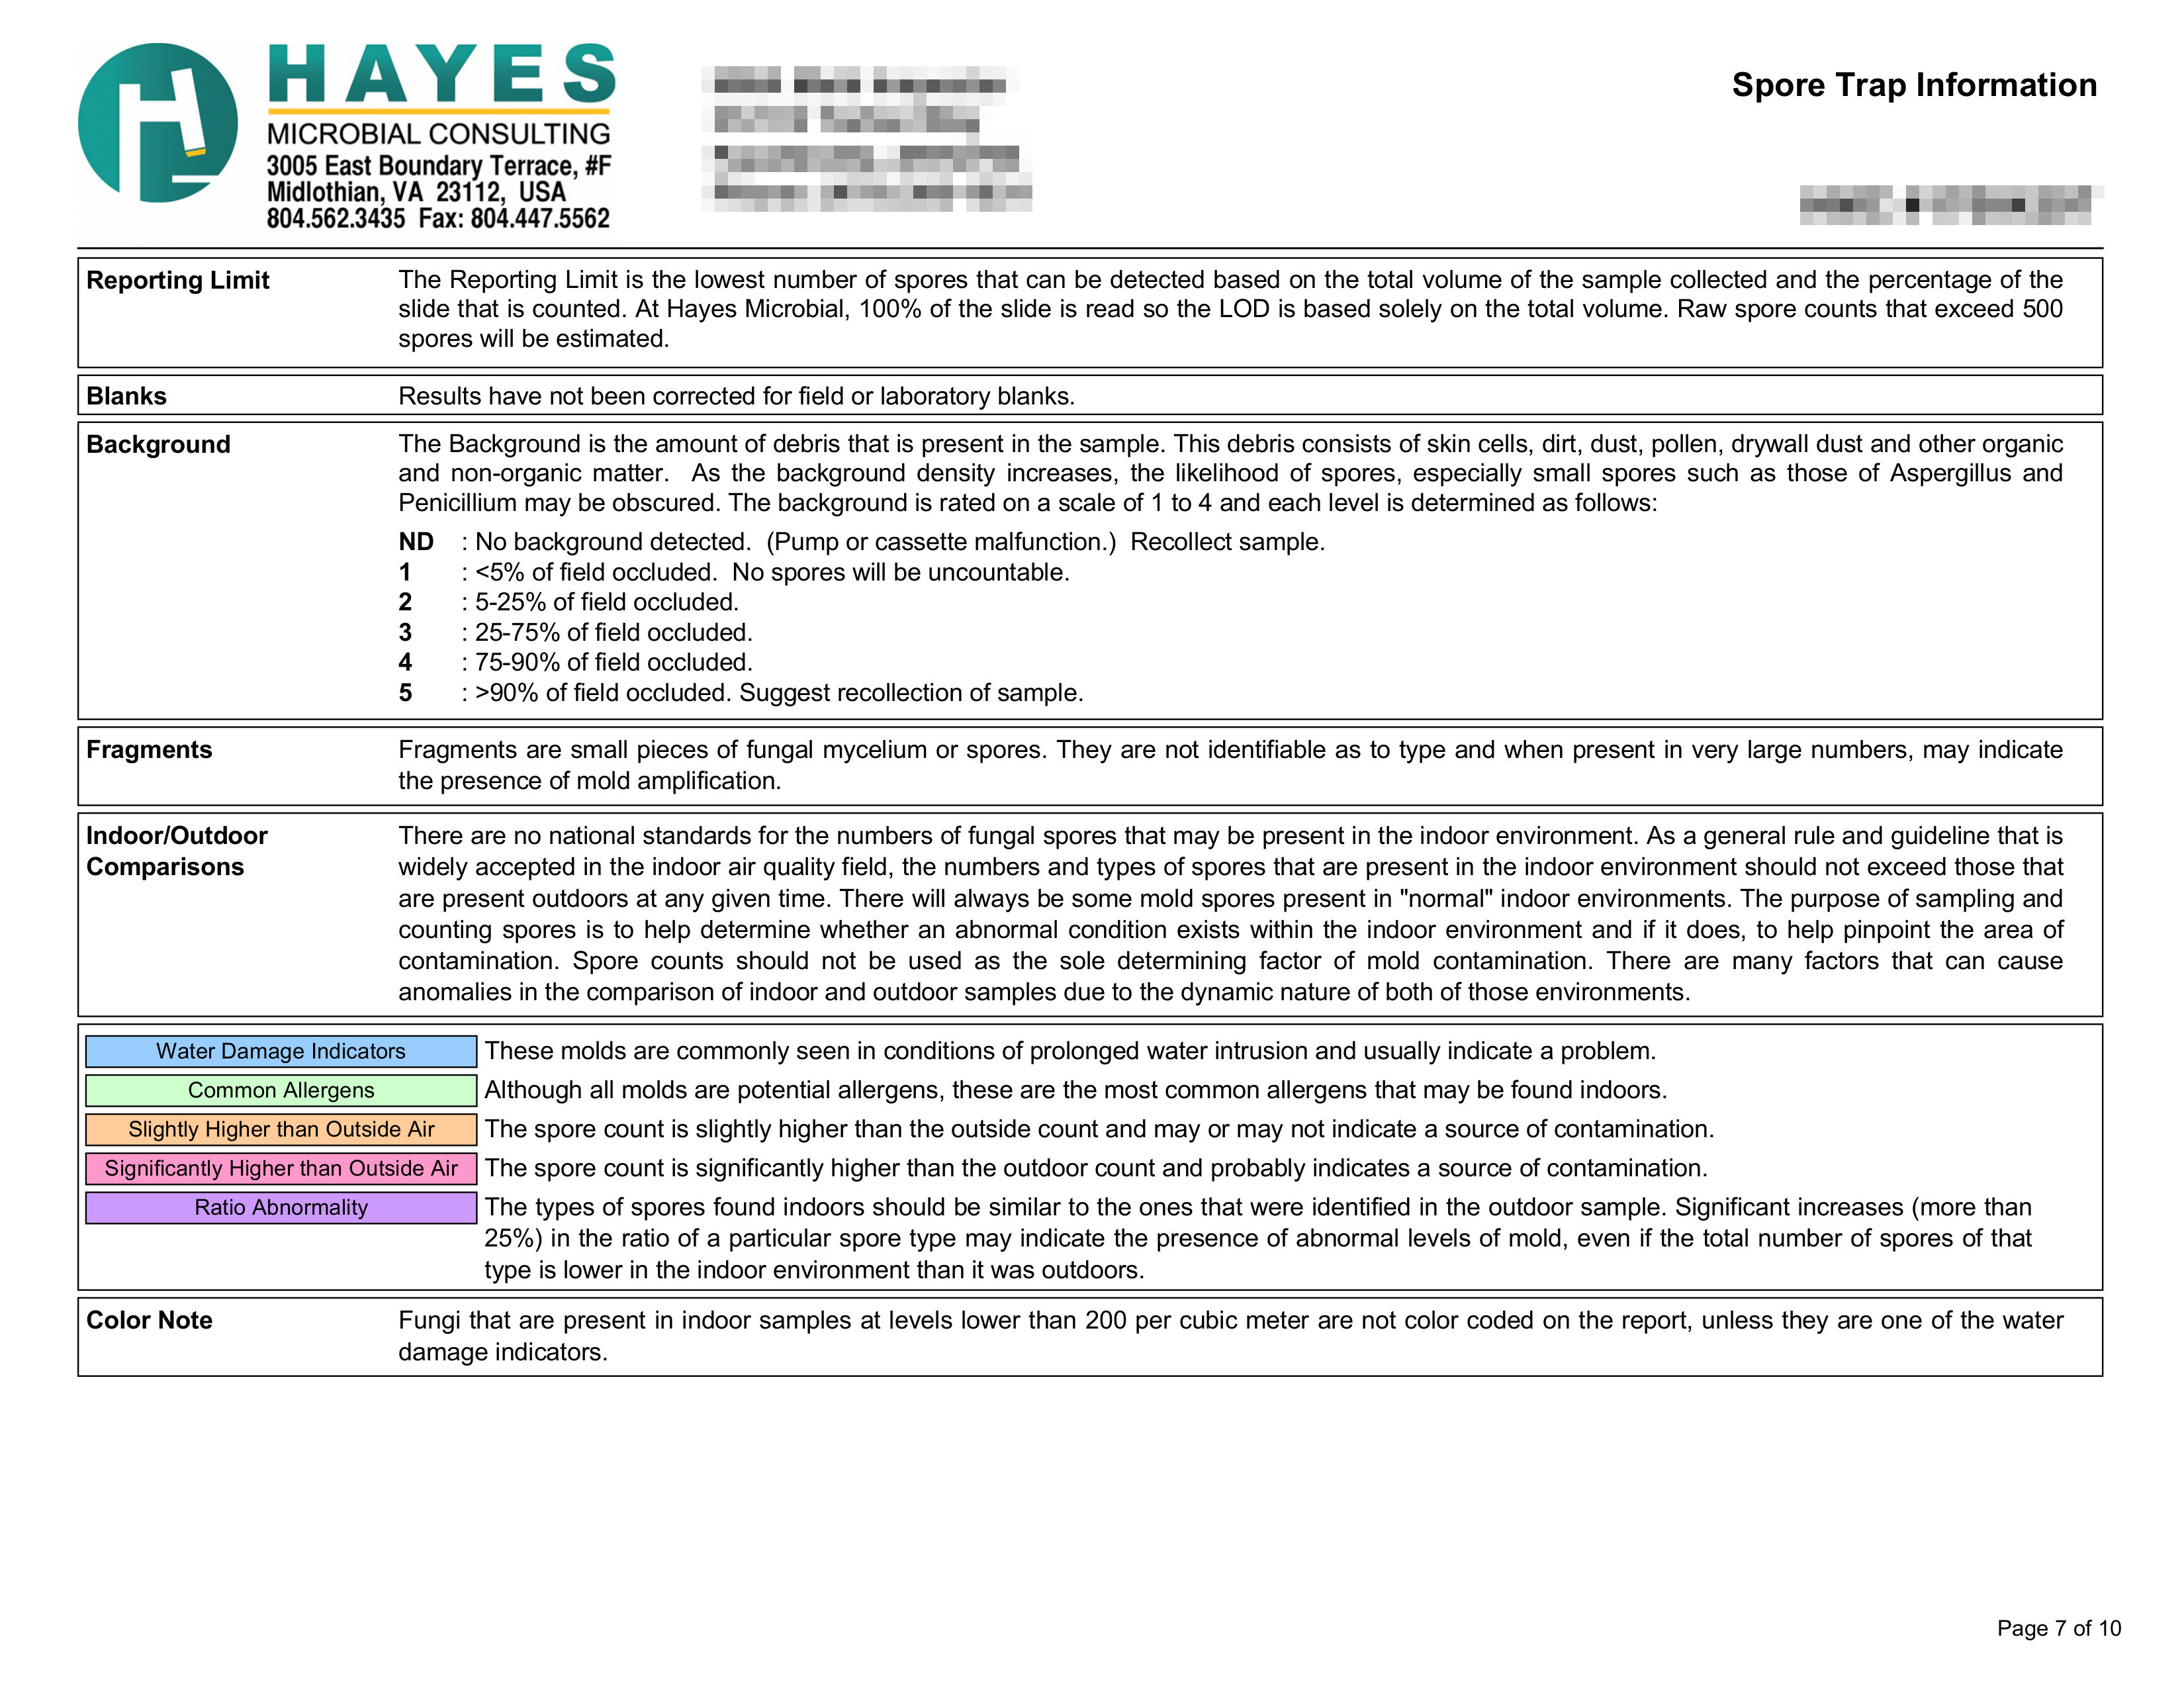 Clearance Report Page 7